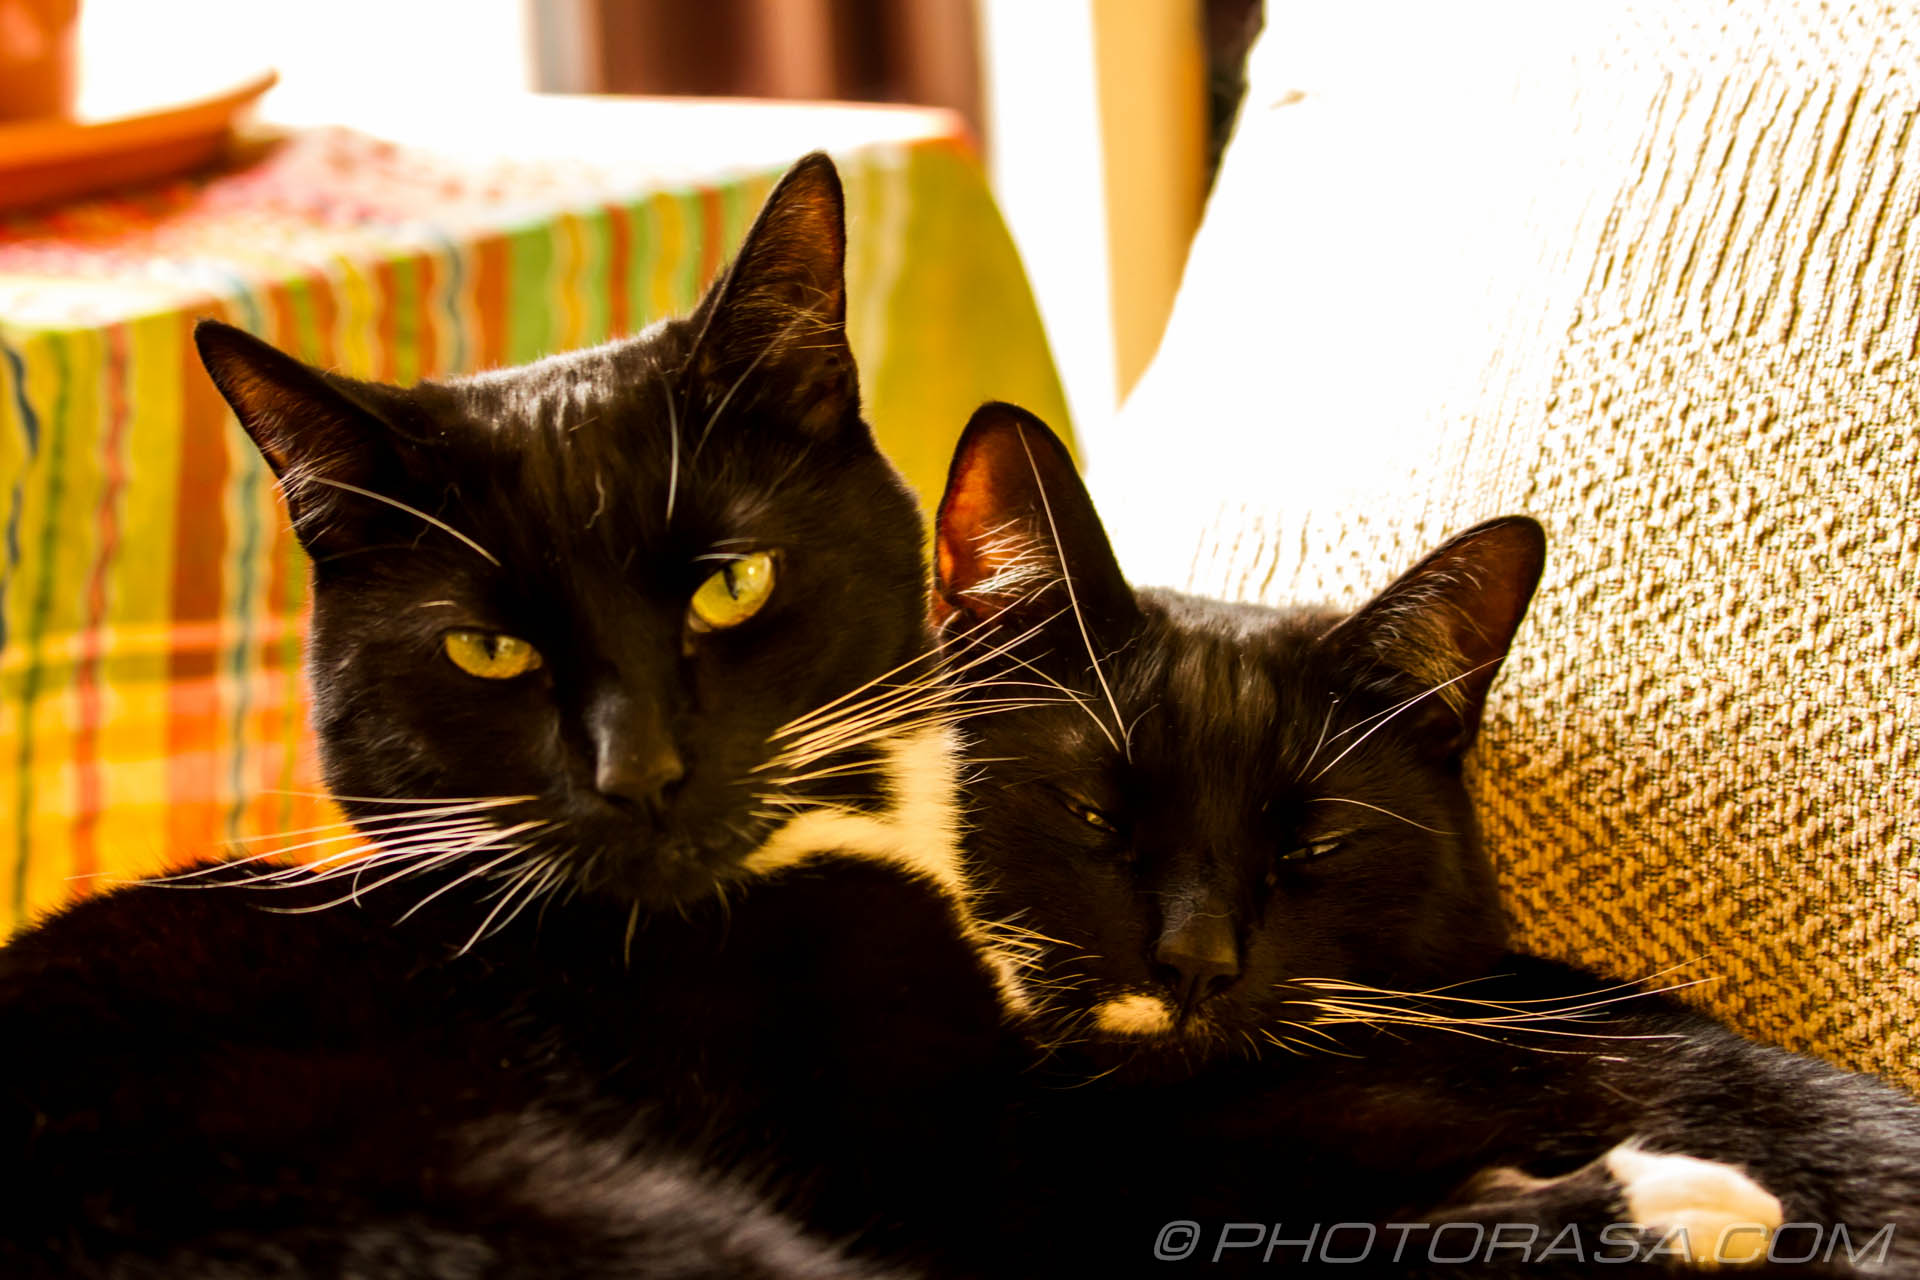 http://photorasa.com/black-cats/two-black-cats-cuddling/